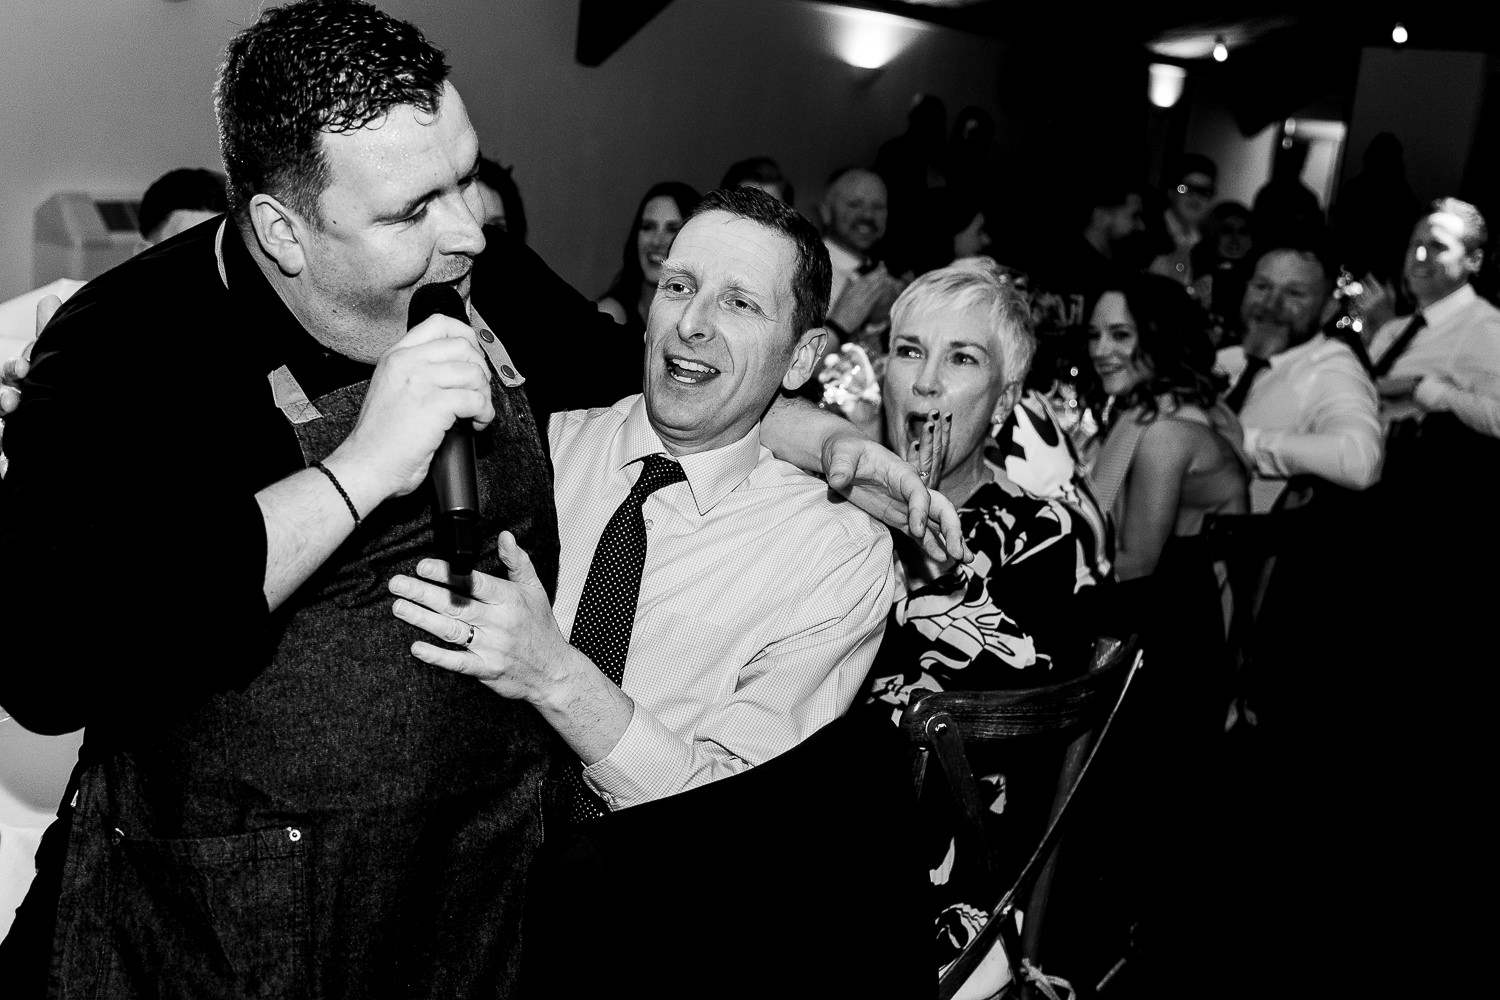 Singing waiter sitting on guests knee